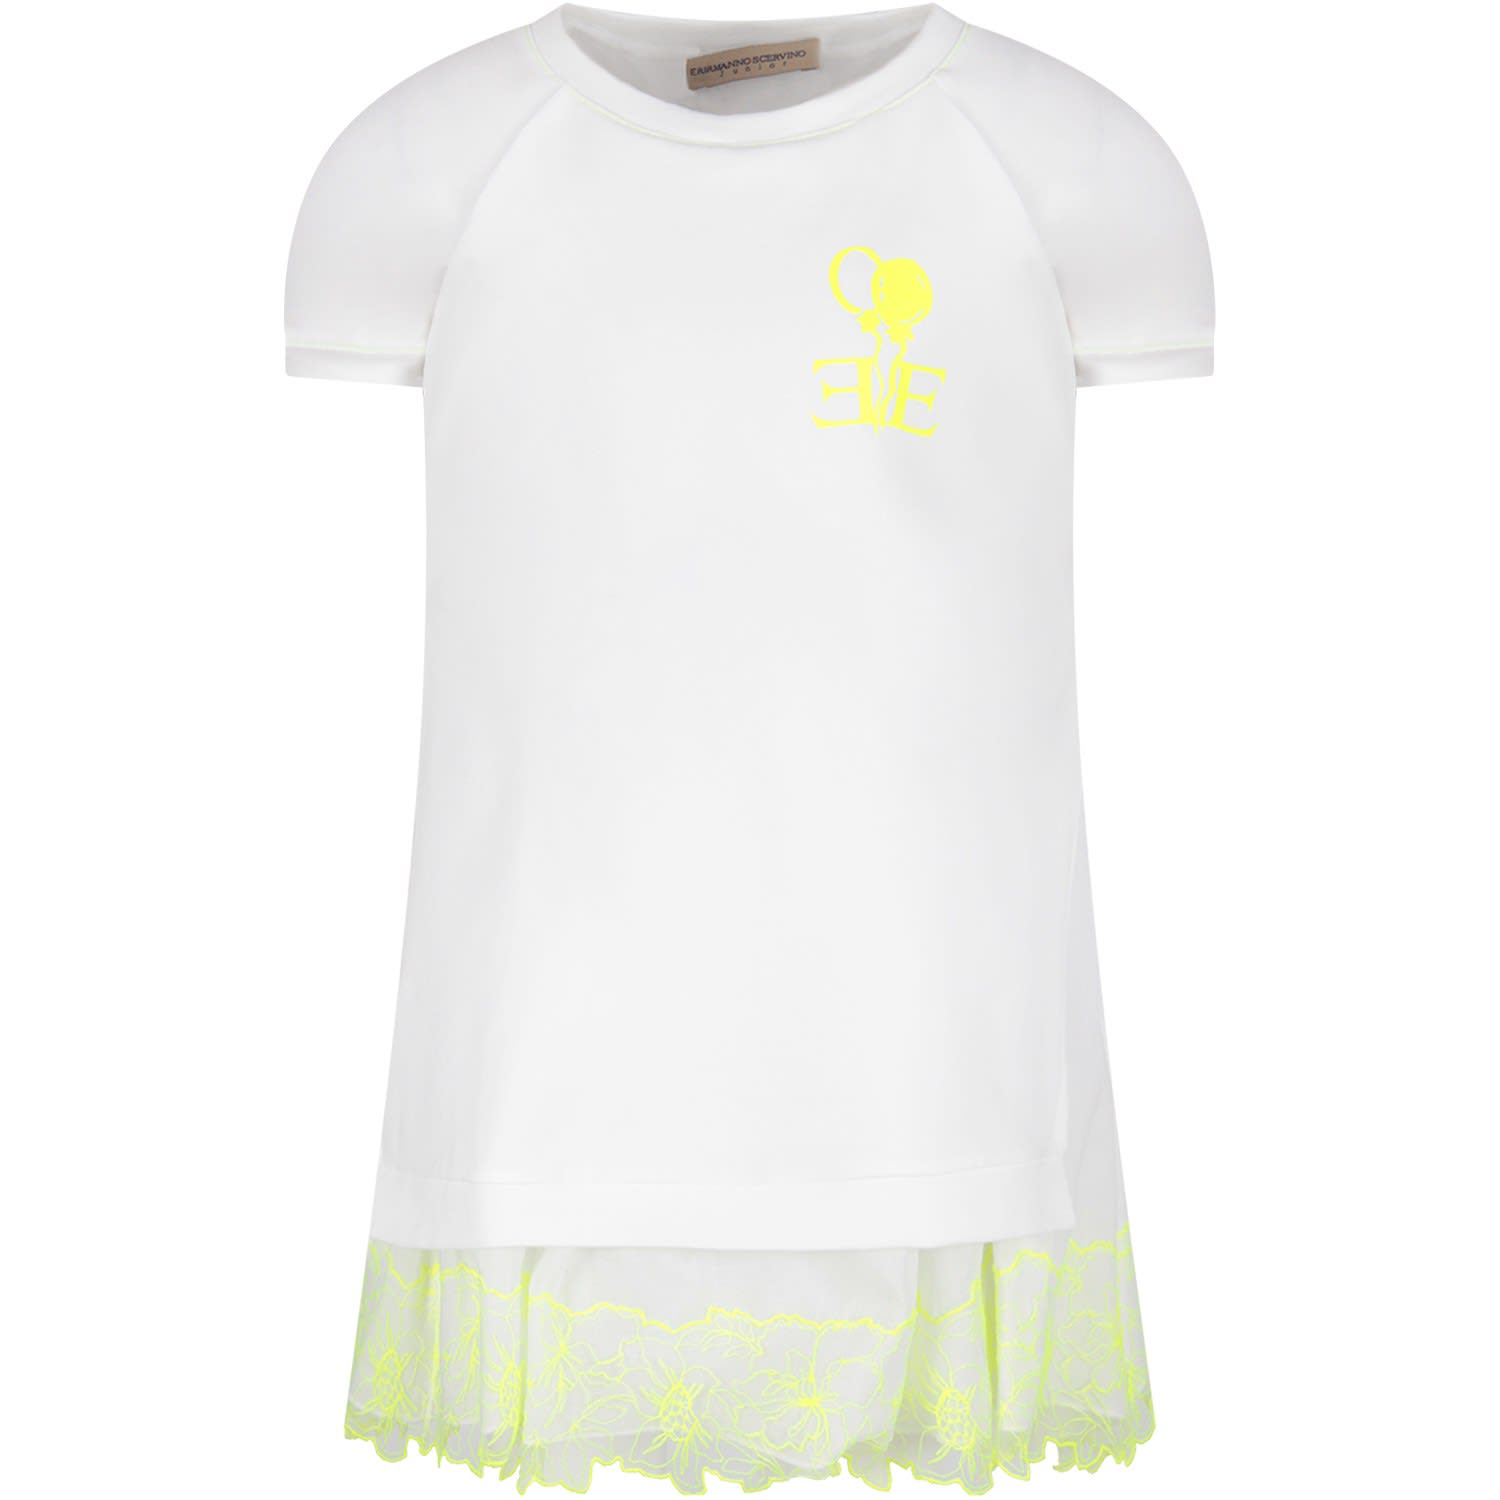 Buy Ermanno Scervino Junior White Girl Dress With Neon Yellow Logo online, shop Ermanno Scervino Junior with free shipping